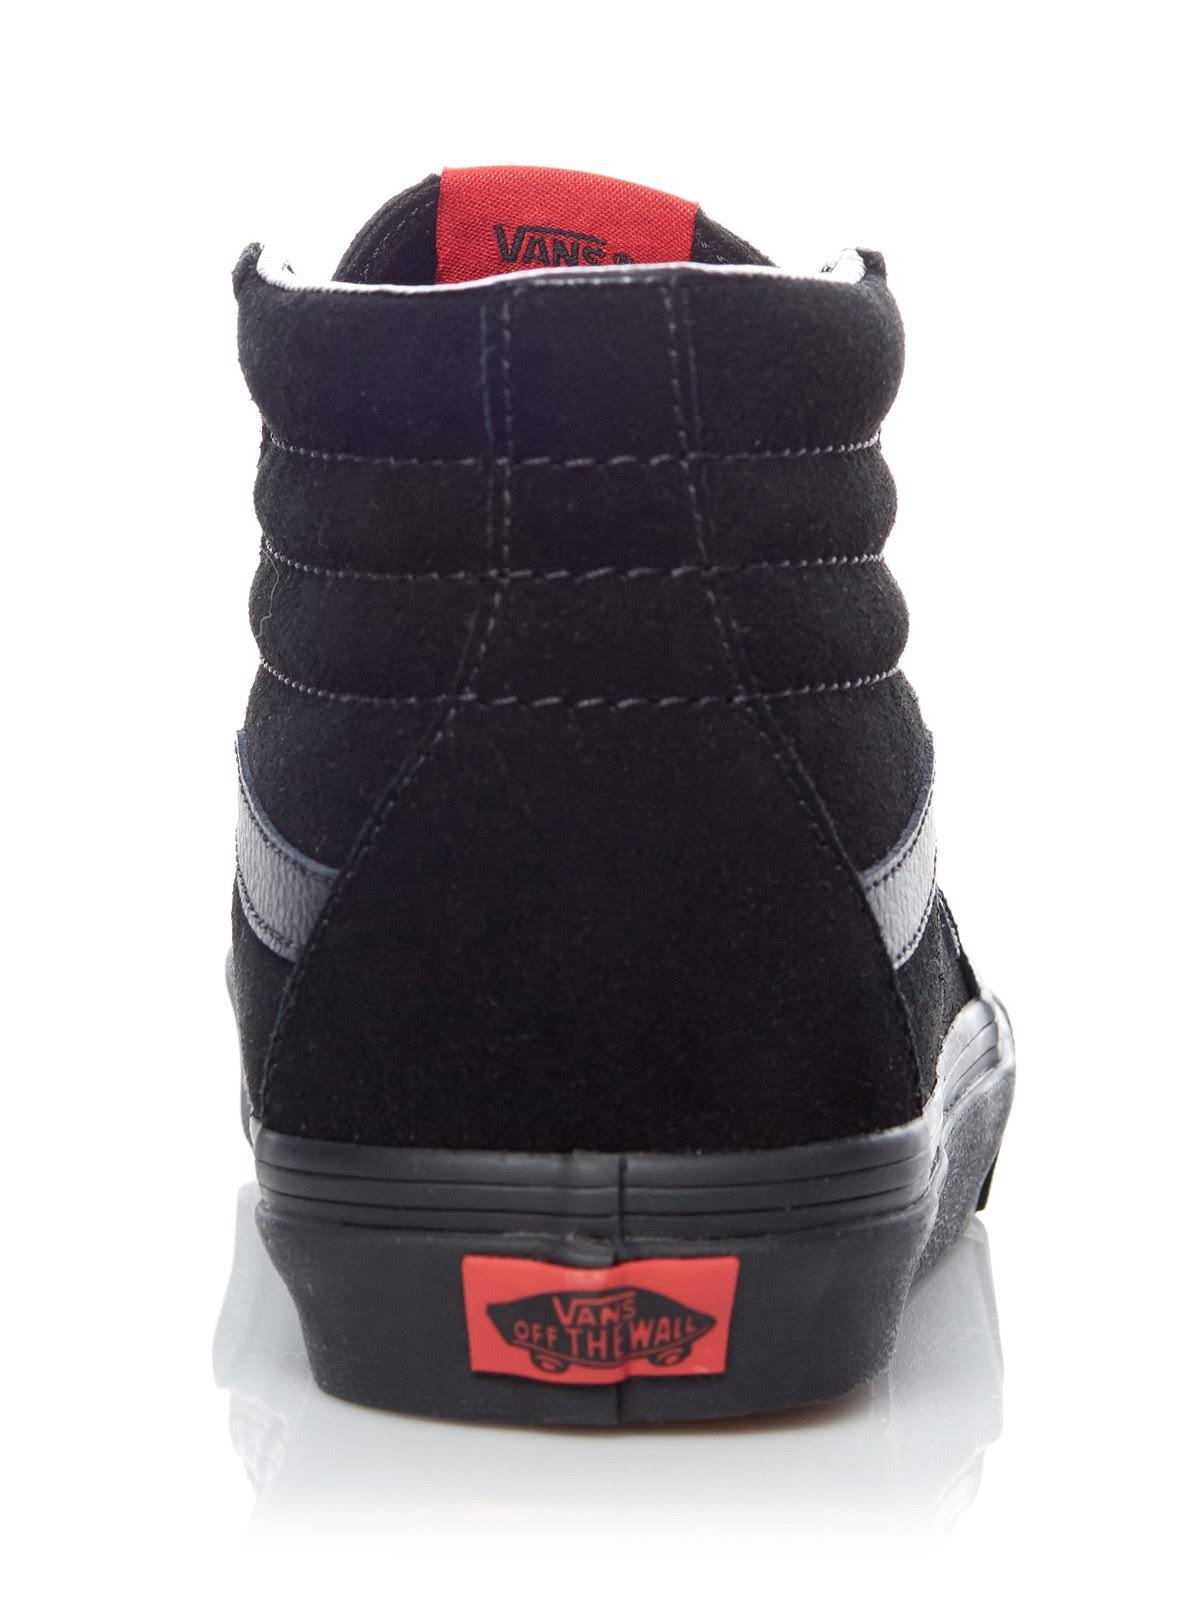 Shoes 11 Sk8 Hi Mens Black Vans Size 5 Vn000d5ibka black qS6ZwtvvWf